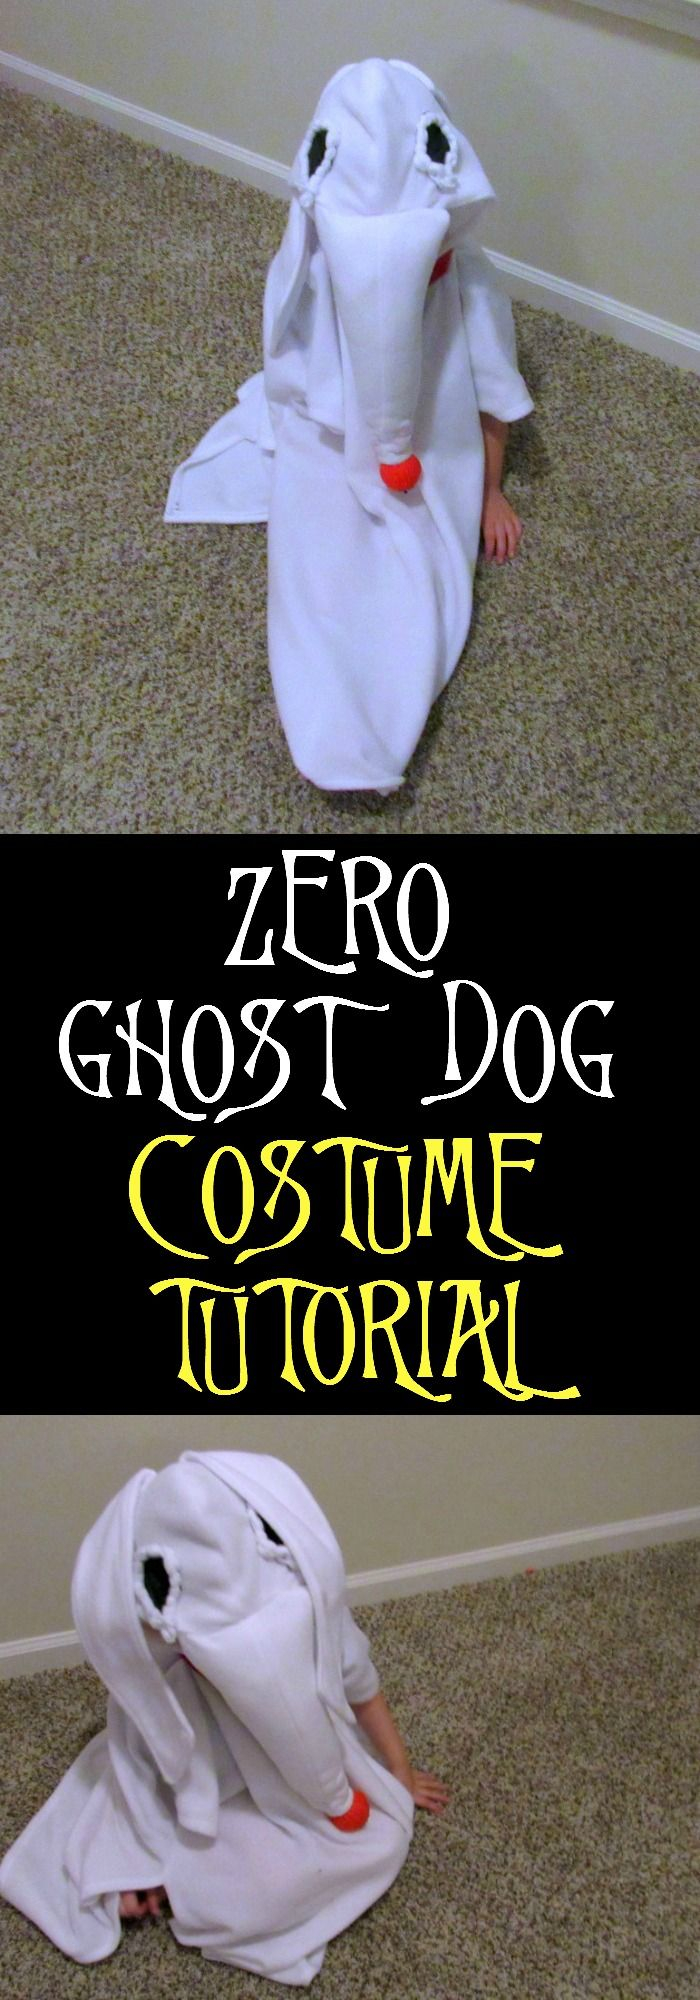 Zero Ghost Dog Costume Tutorial. Learn how to make your own Zero Ghost Dog Costume with simple tutorial. Makes a great halloween or cosplay costume.